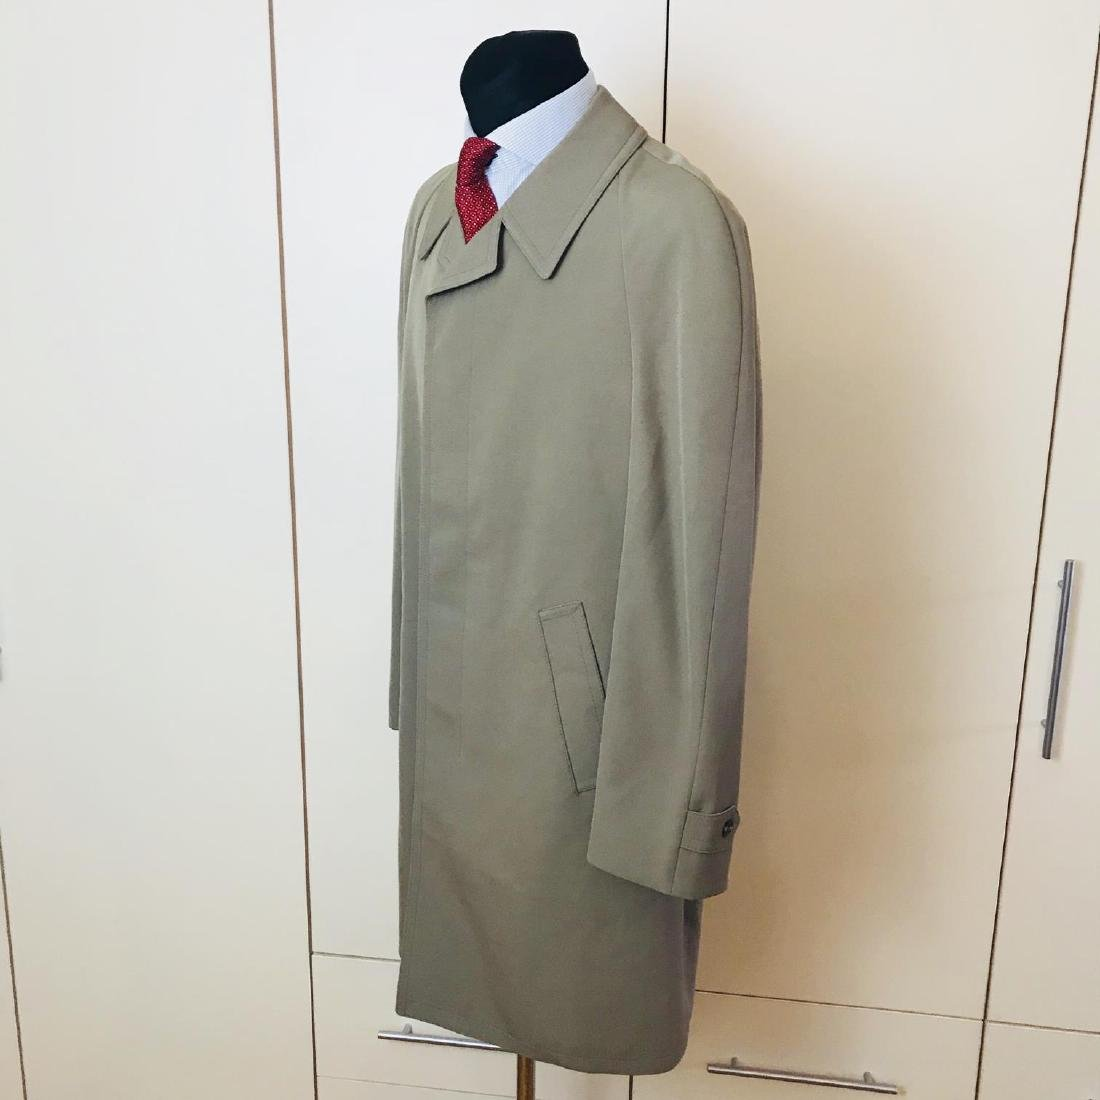 Vintage Men's Trench Coat Size US 38 EUR 48 - 5